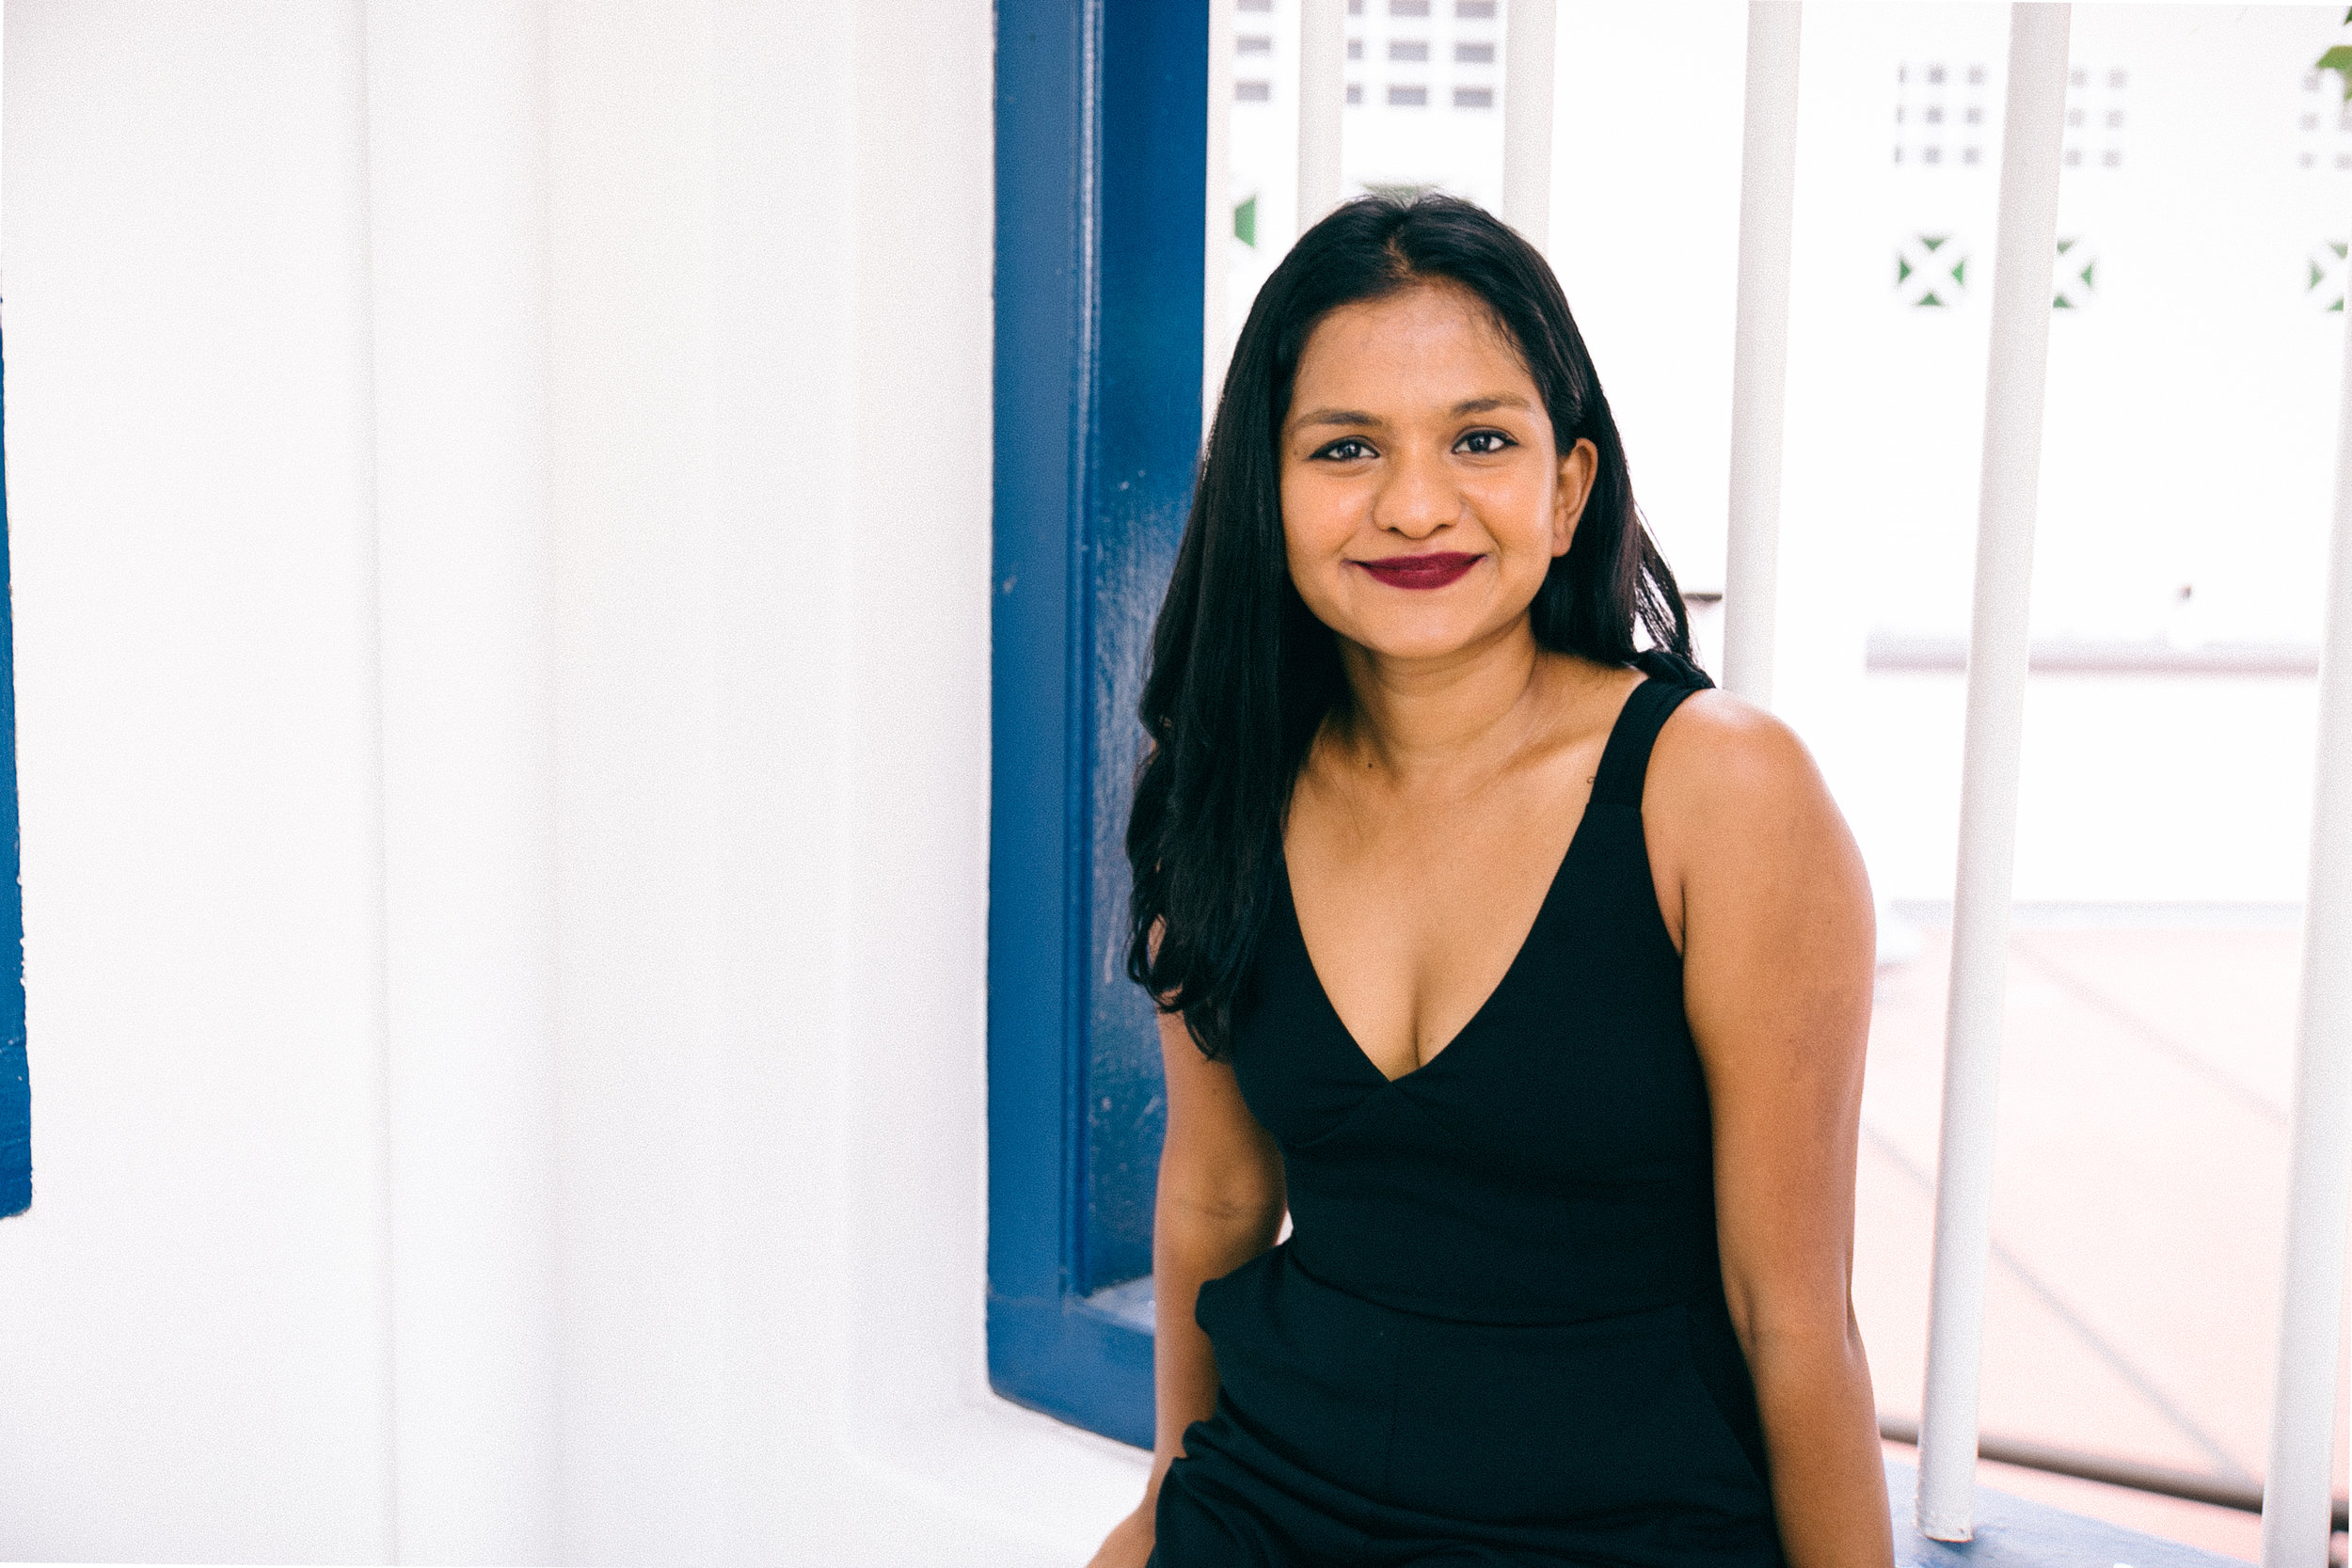 Satya Purna - Business Strategist + Mindset Coach for Ambitious SolopreneursFounder, ZAG Studios